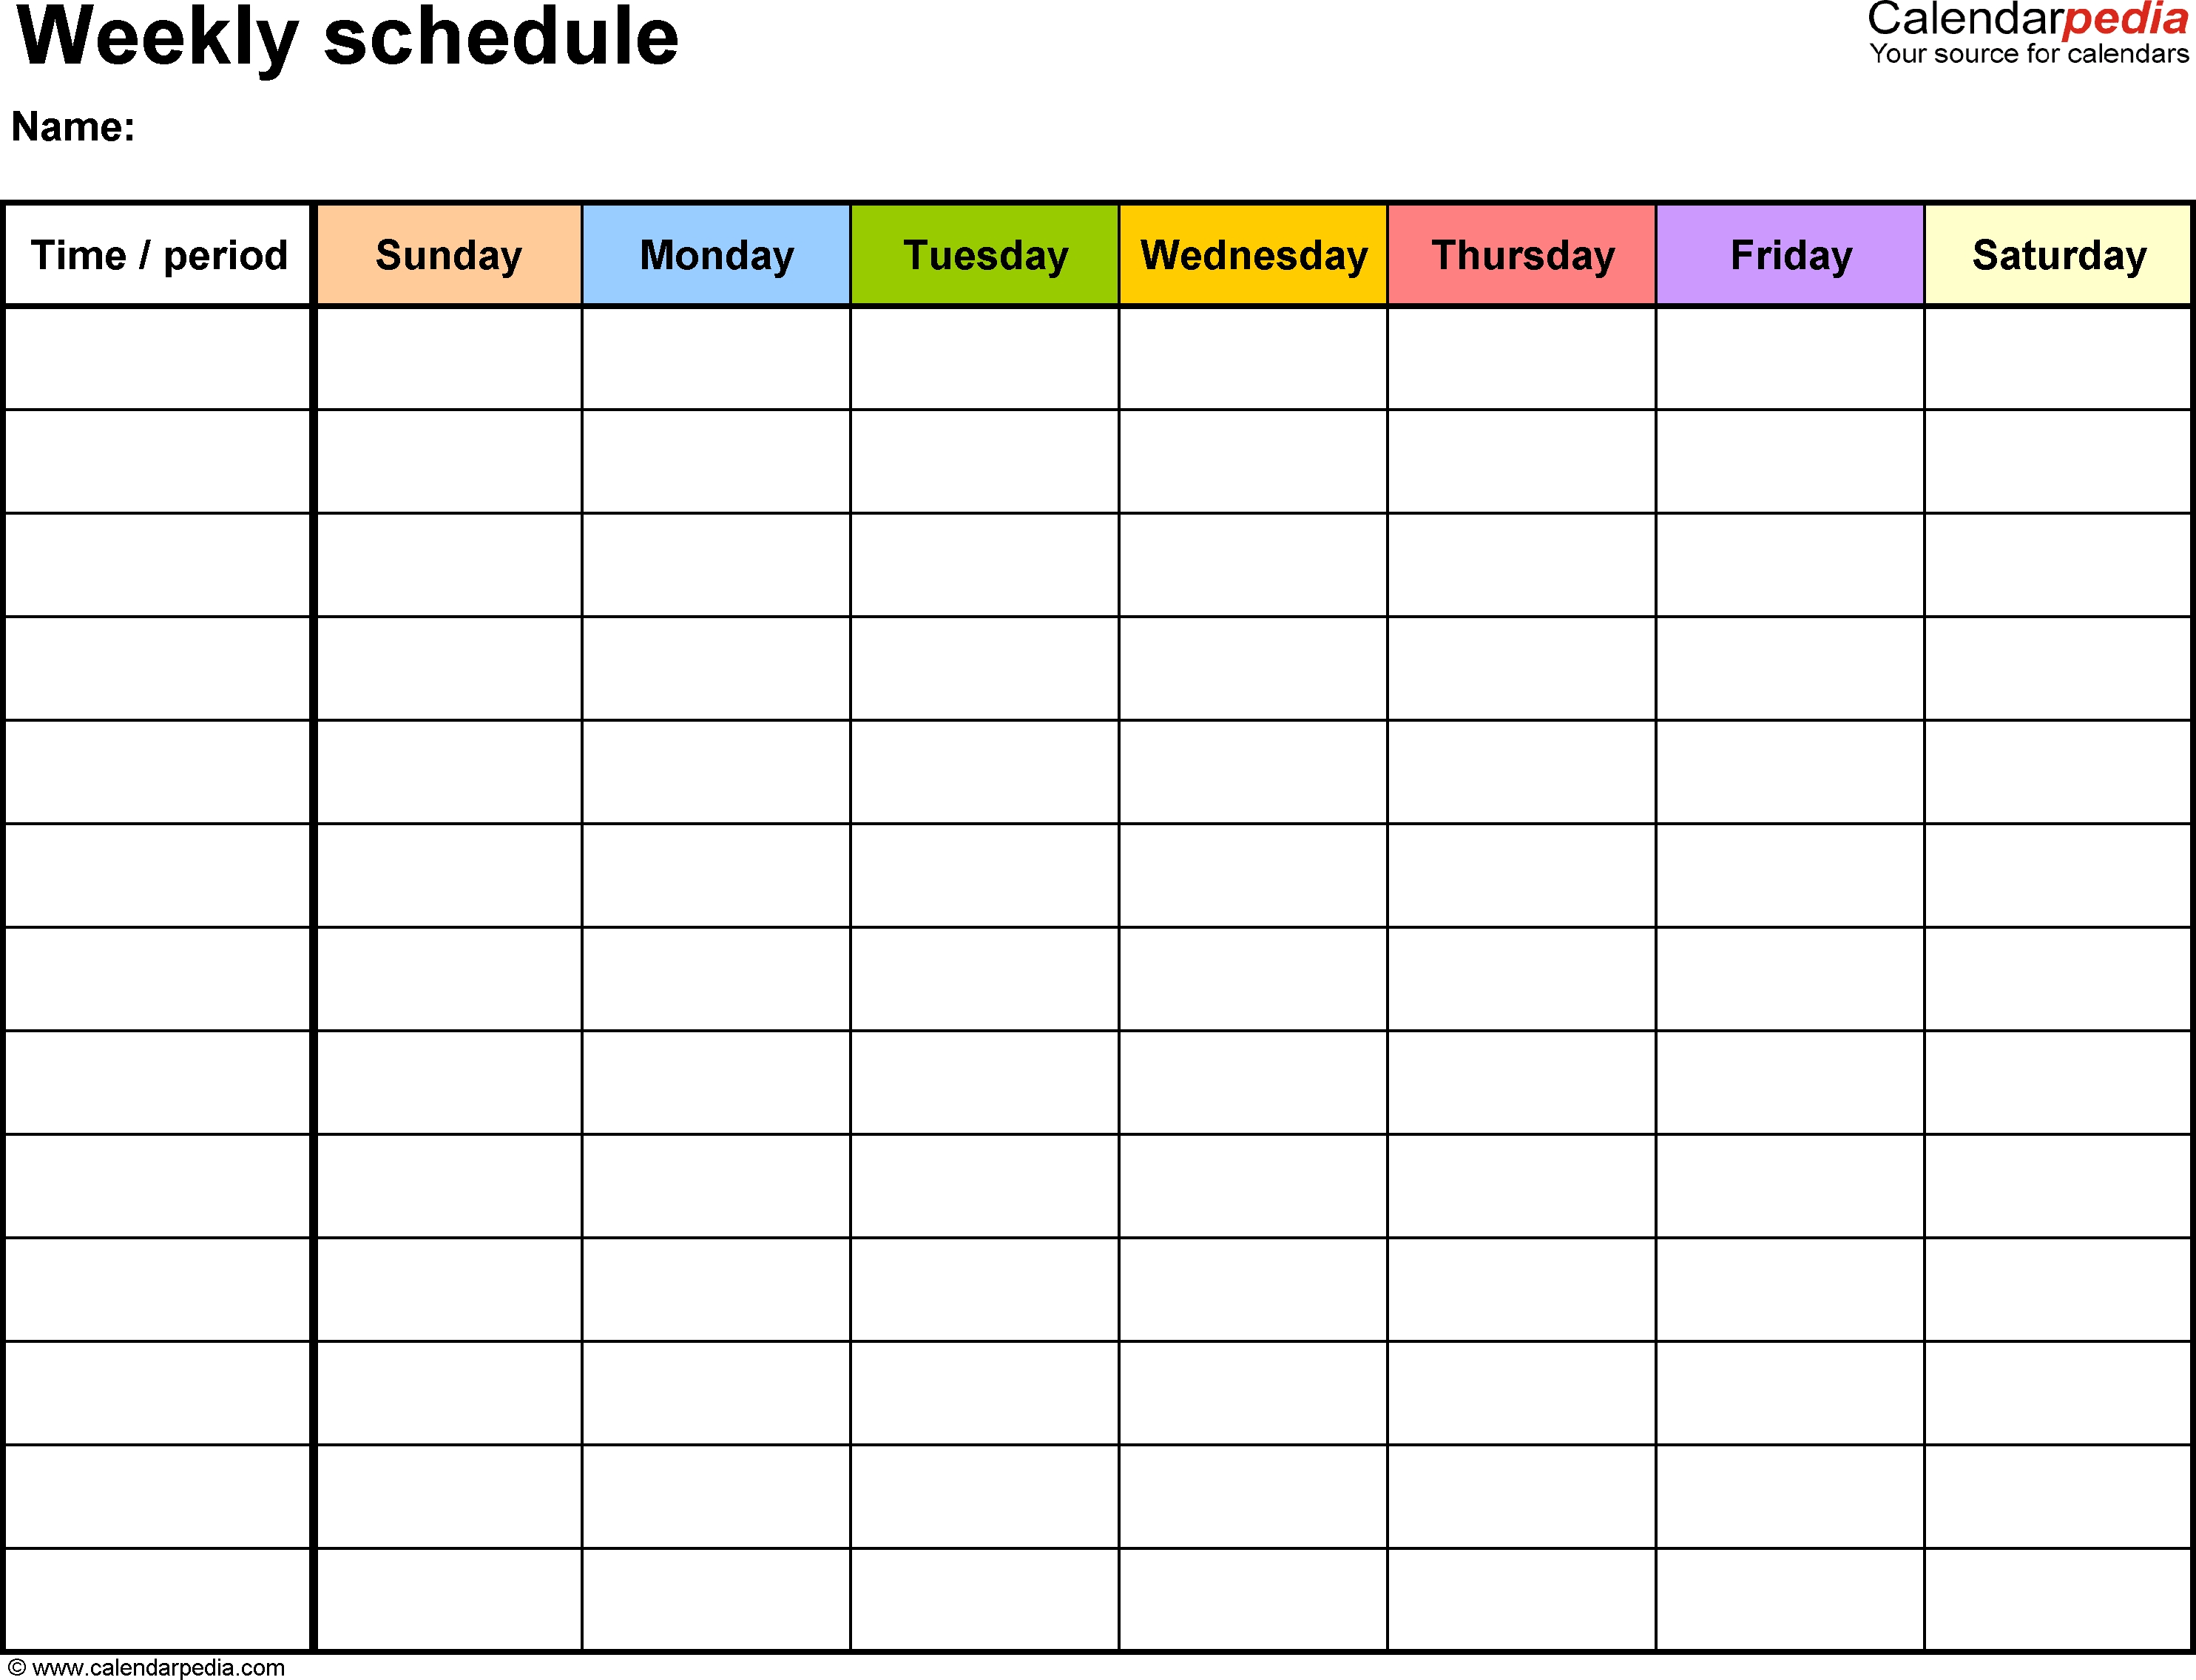 Free Weekly Schedule Templates For Word - 18 Templates in Monday - Sunday Weekly Schedule